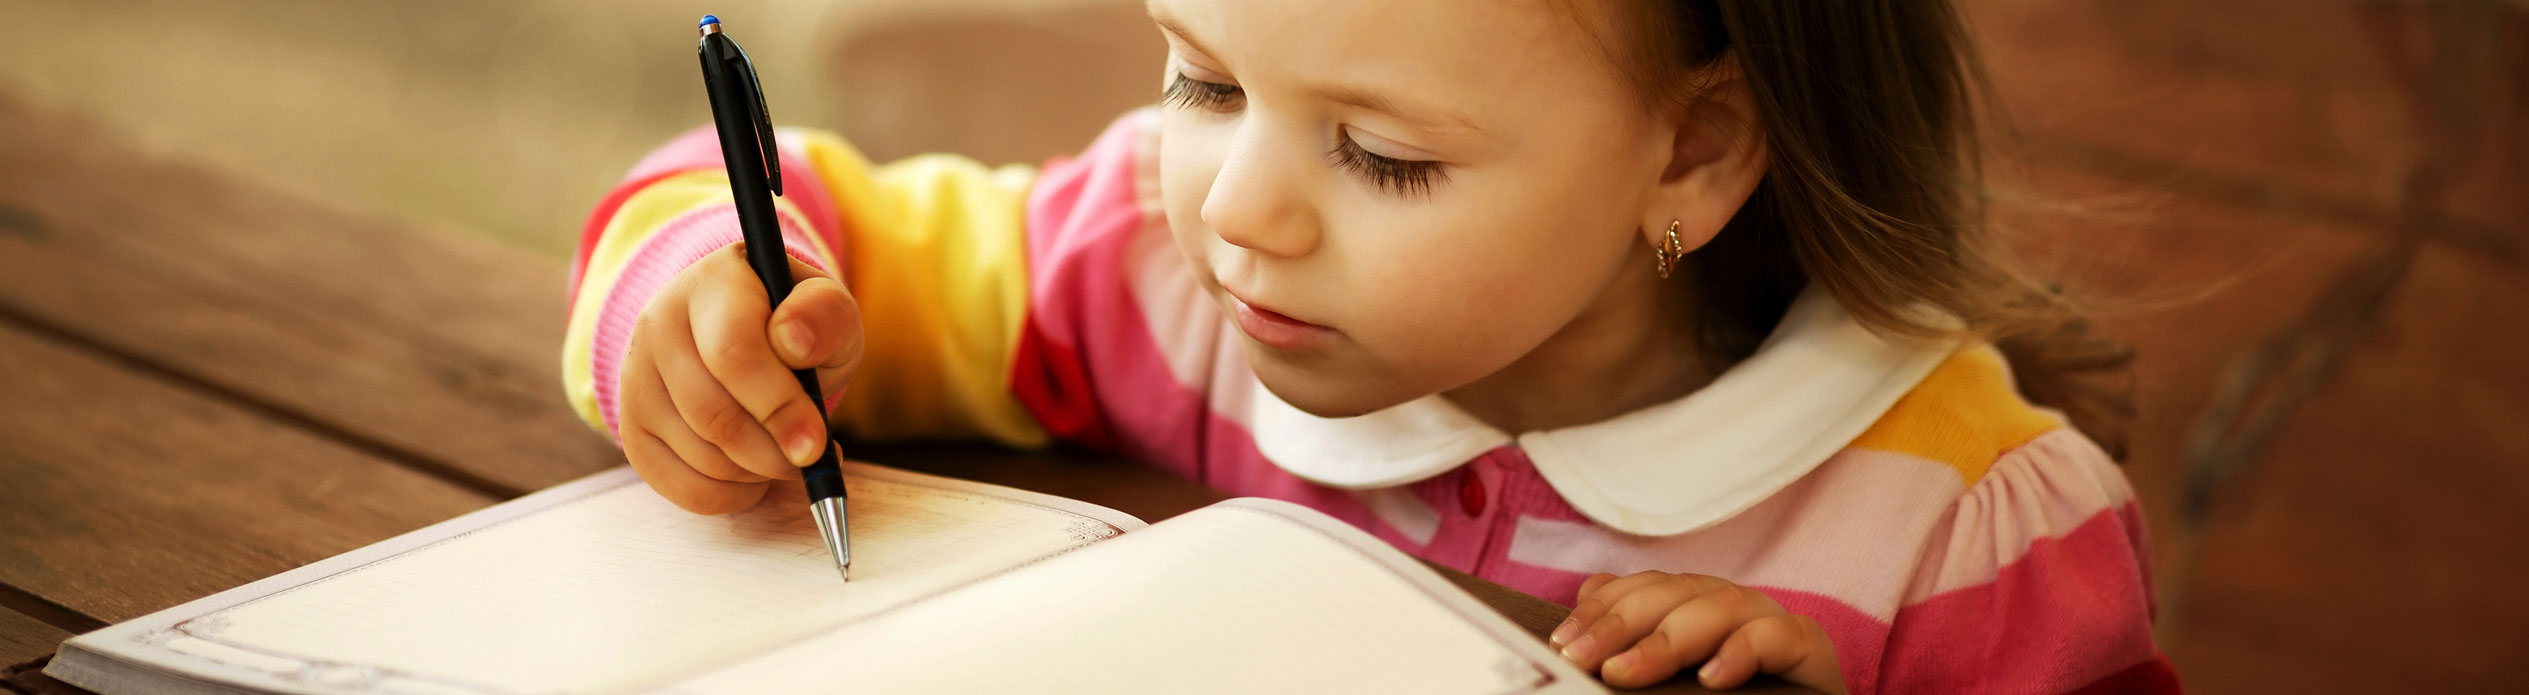 Girl Writing for Speech Bee Speech Pathology and Therapy Services Helping Communication Difficulties